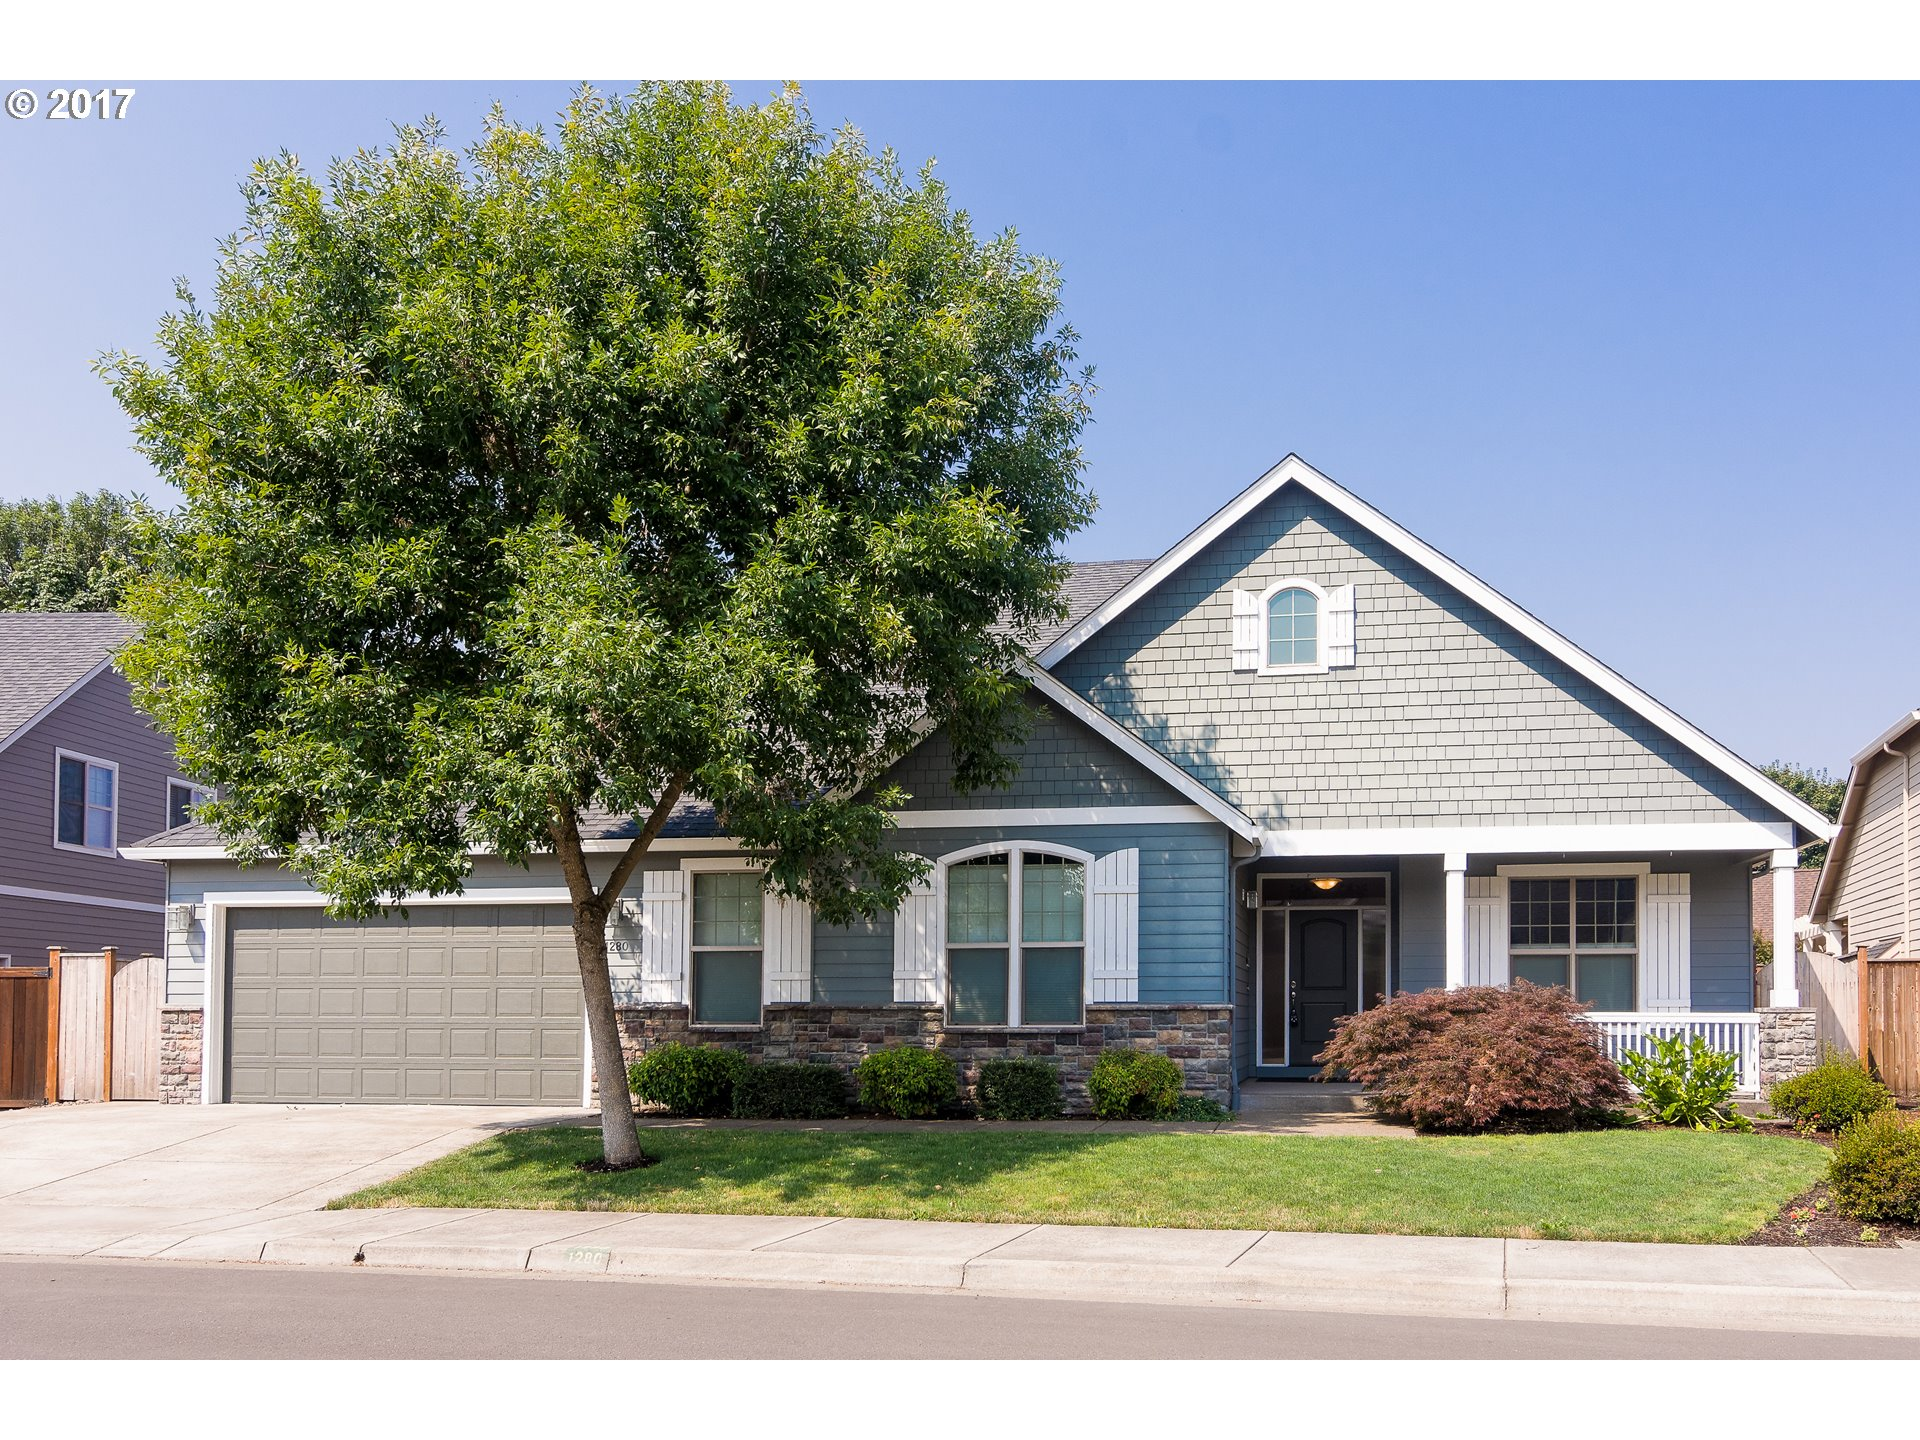 1280 S 40TH PL, Springfield, OR 97478